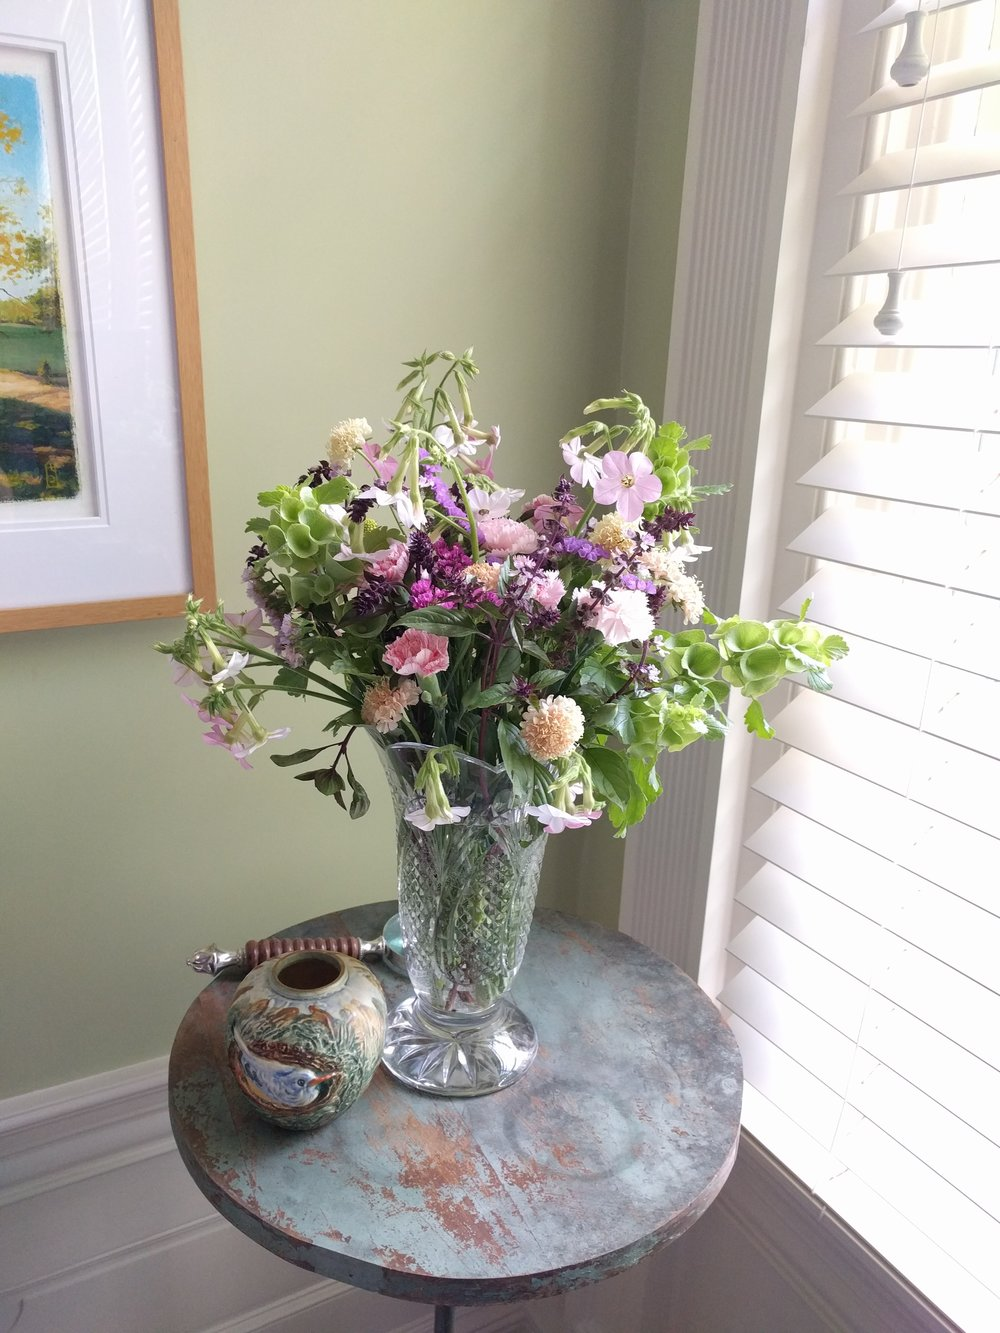 Need a beautiful, fresh, unique, locally-grown bouquet for a friend, loved one or yourself? We are happy to deliver one for you! Please  contact us  for more information and pricing.